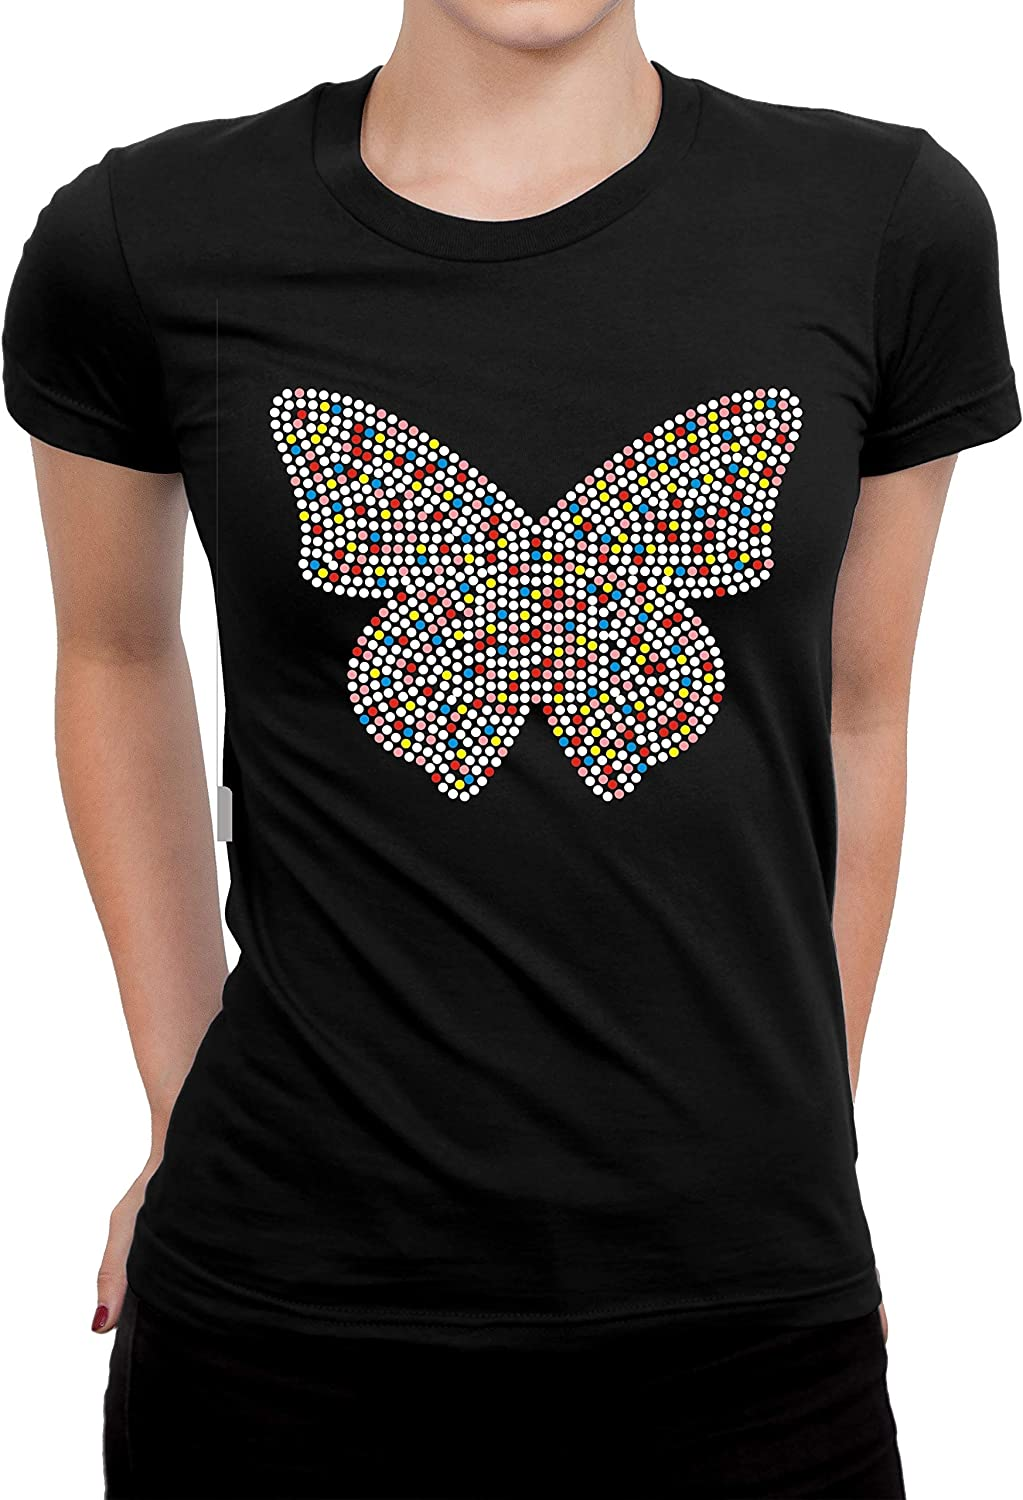 Butterfly Rhinestones Bling Shirts, Black color